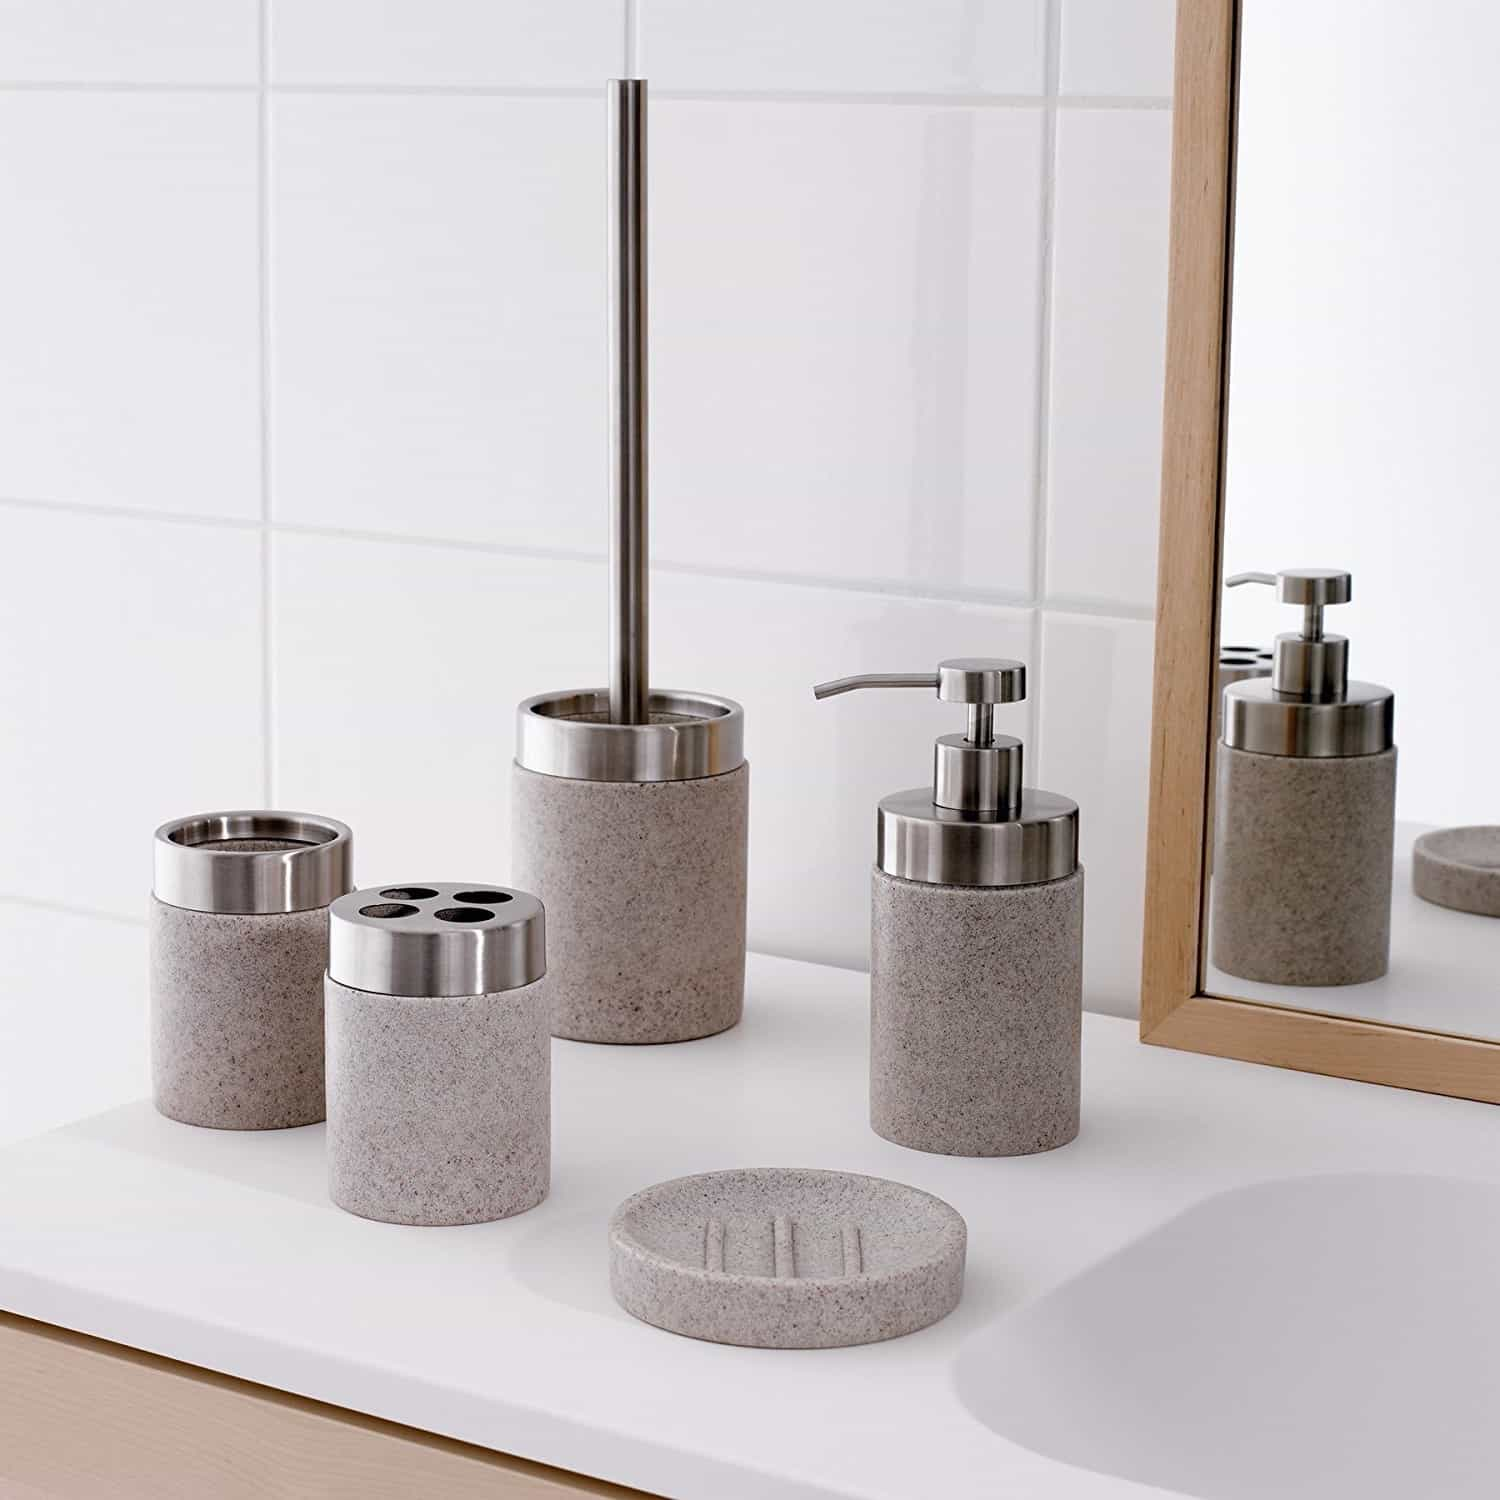 Modern Toothbrush Holder Set With Soap Dispenser And Dishes (Image 4 of 6)